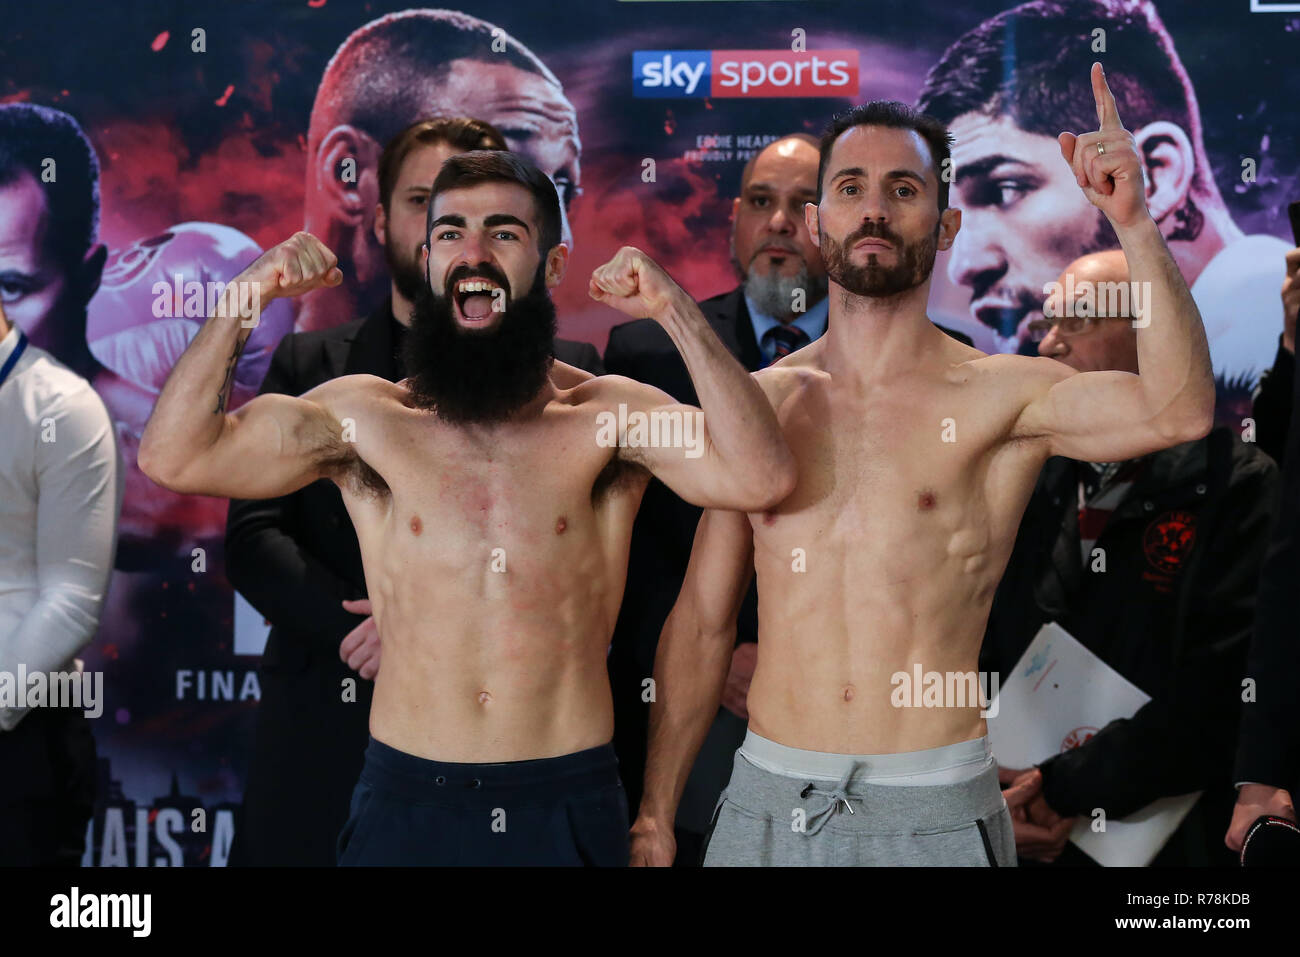 Jono Carroll Boxer, Jono Carroll weighs in ahead of his fight with Guillaume Frenois on a Matchroom Boxing event in Sheffield, UK. - Stock Image